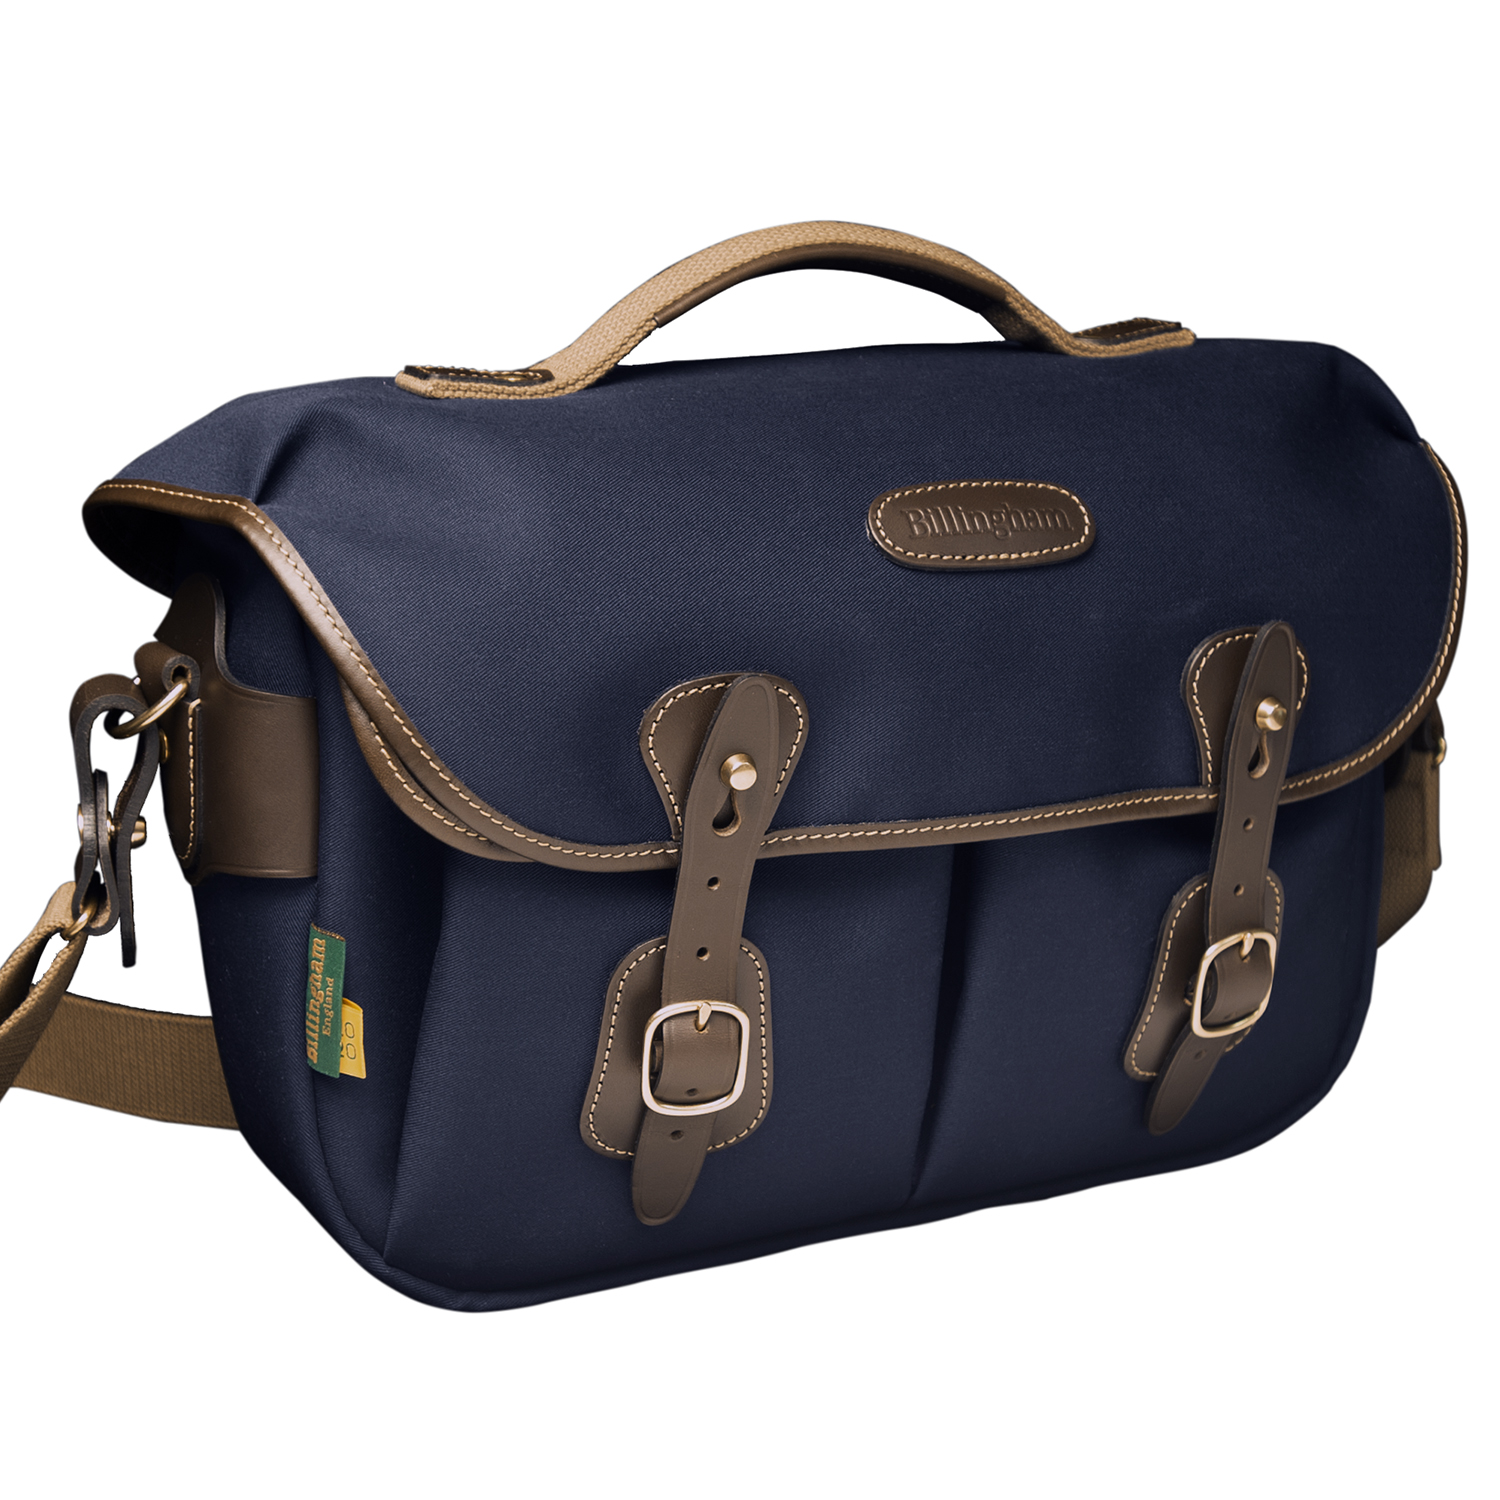 Billingham Hadley Pro 2020 Camera Bag